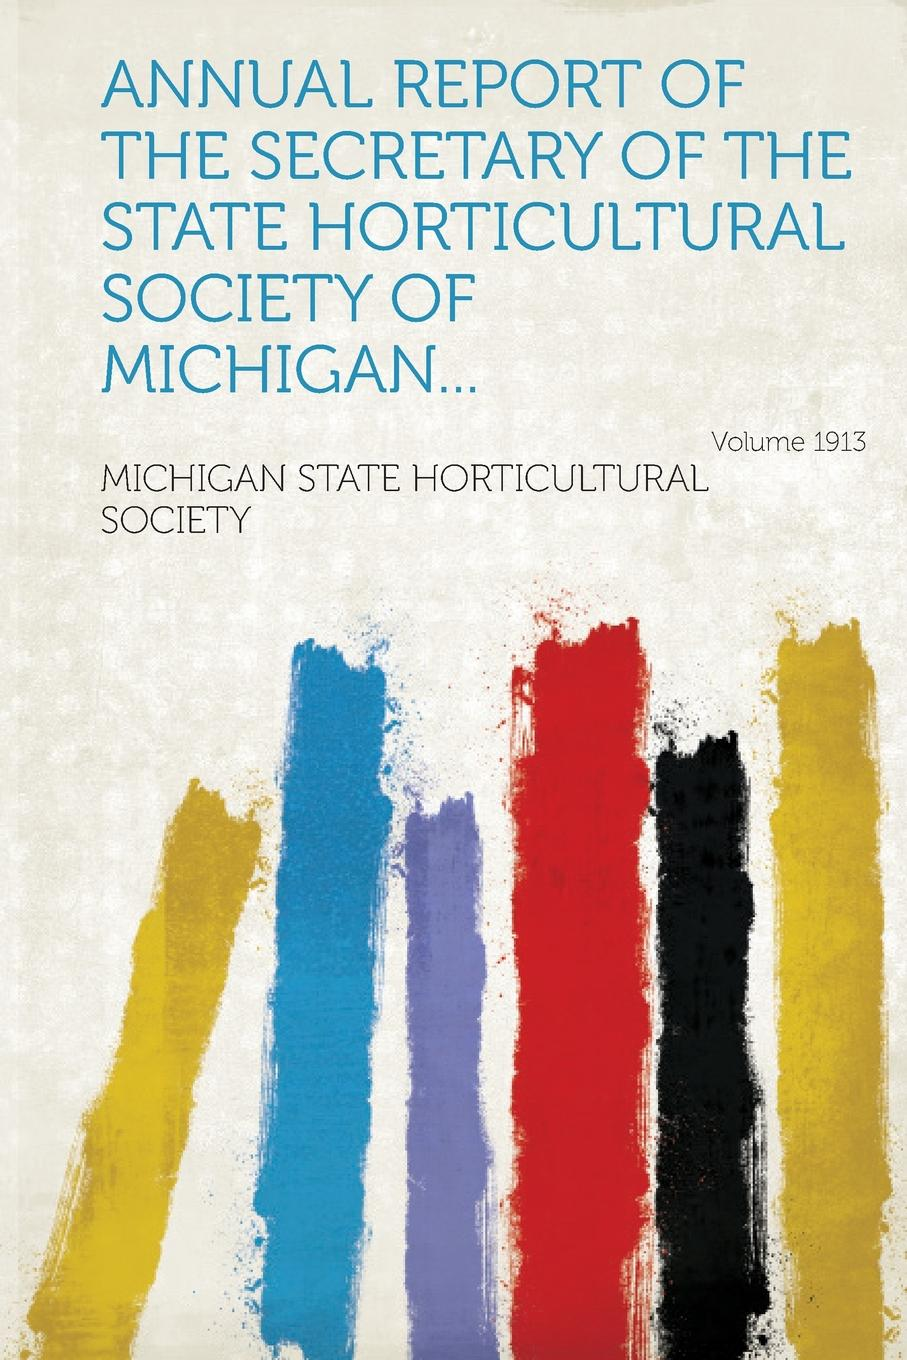 Annual Report of the Secretary of the State Horticultural Society of Michigan... Year 1913